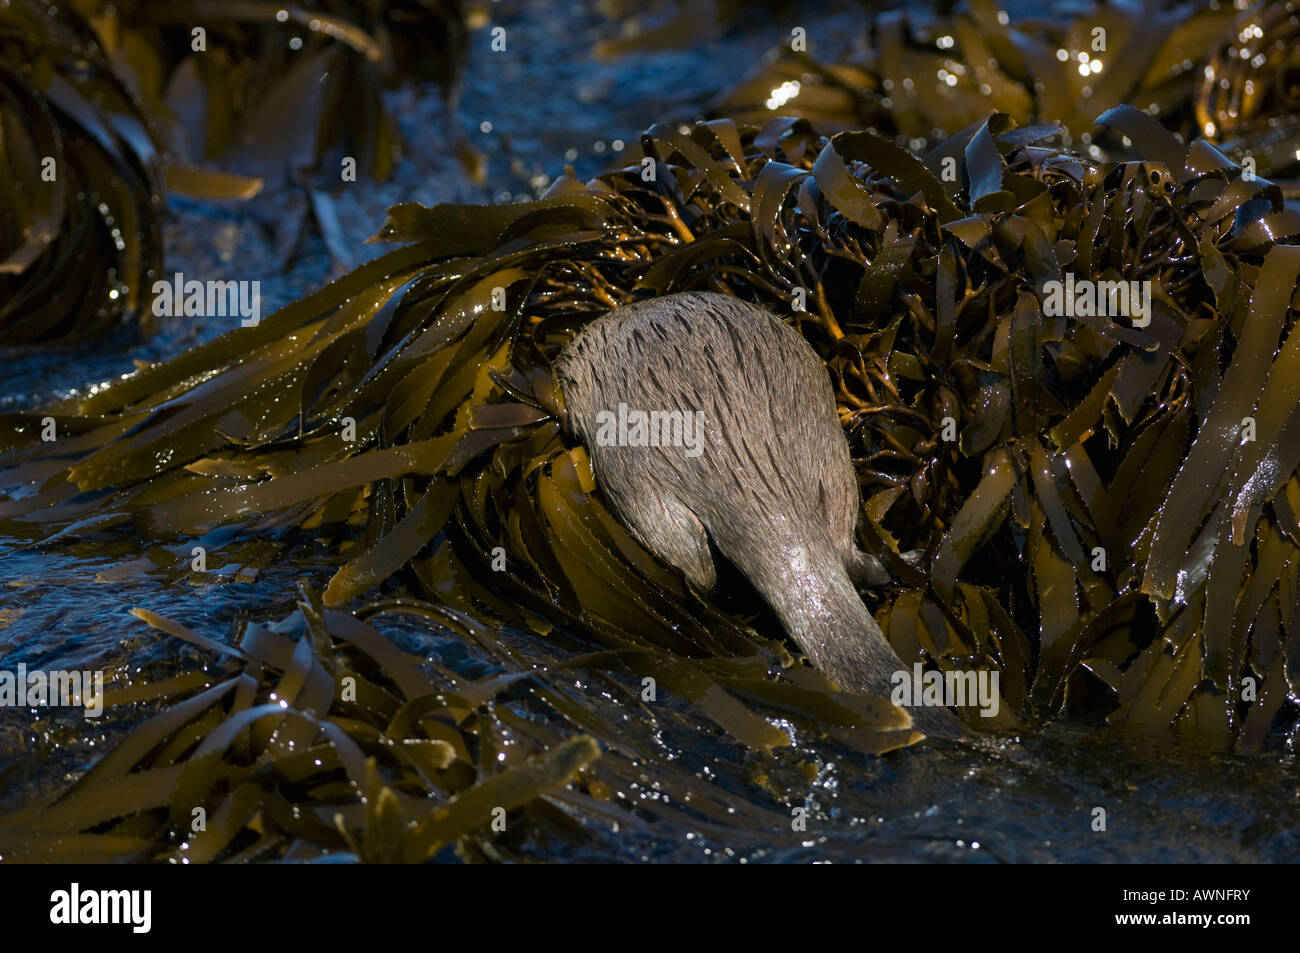 Marine Otter (Lontra felina) or Chungungo, ENDANGERED, Chiloe Island, Chile Foraging in kelp beds at low tide - Stock Image